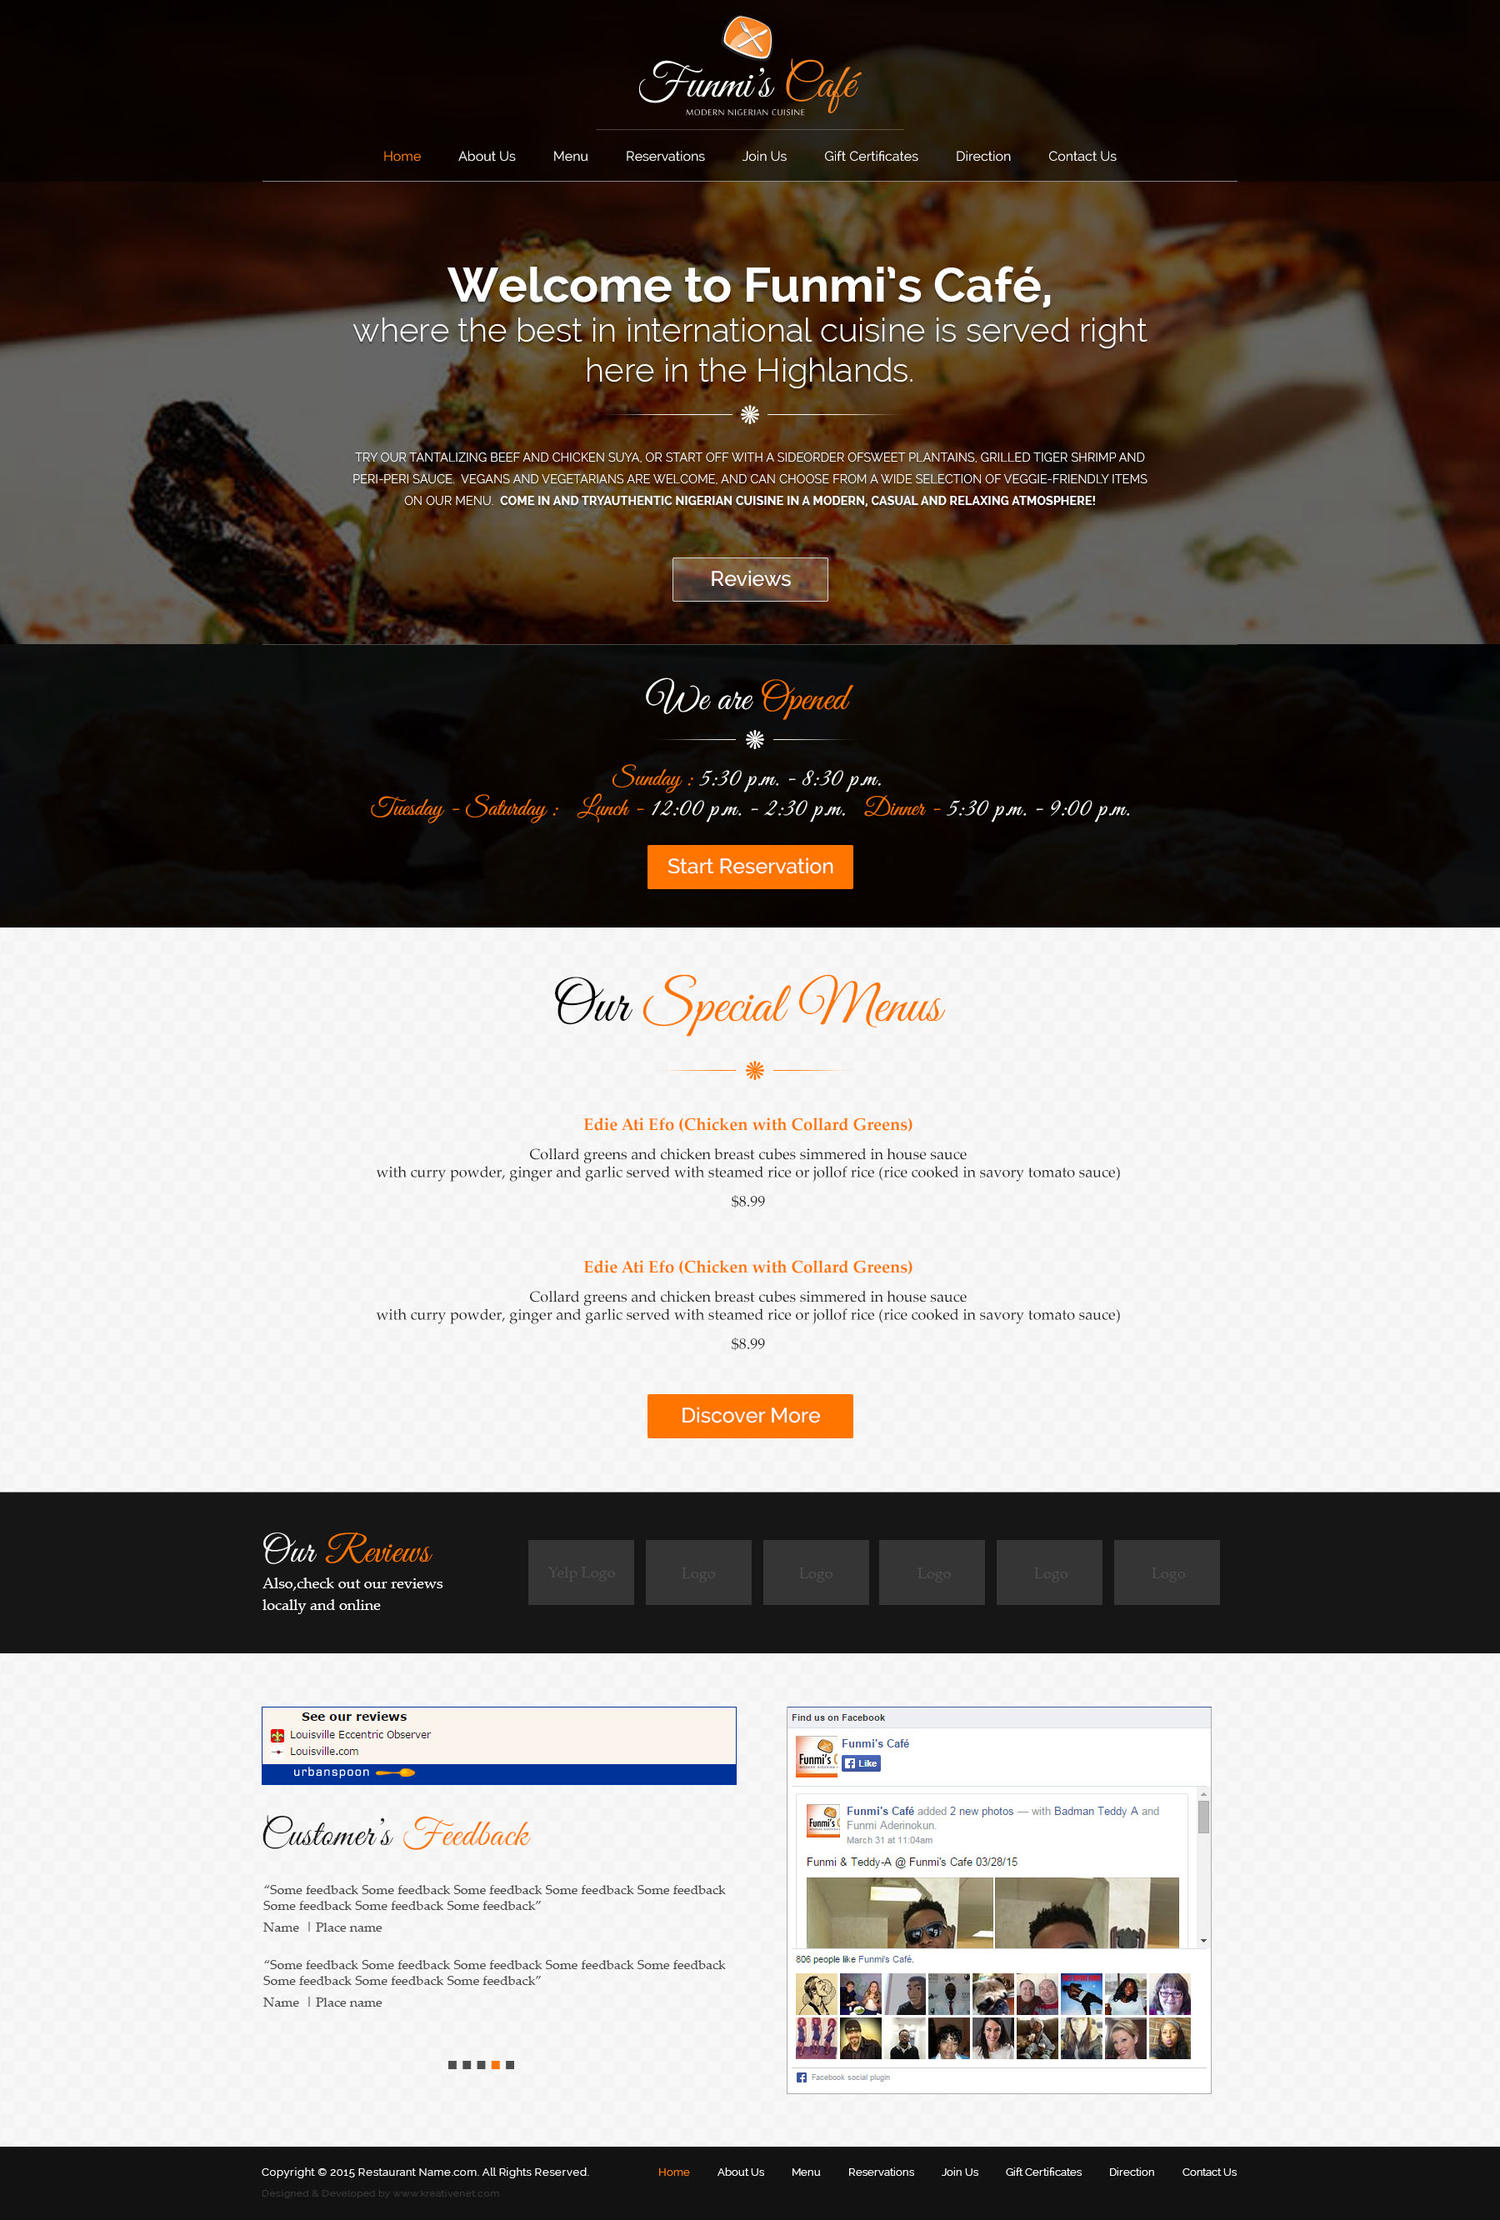 Landing Page Design and Development by kreativenet - 101455